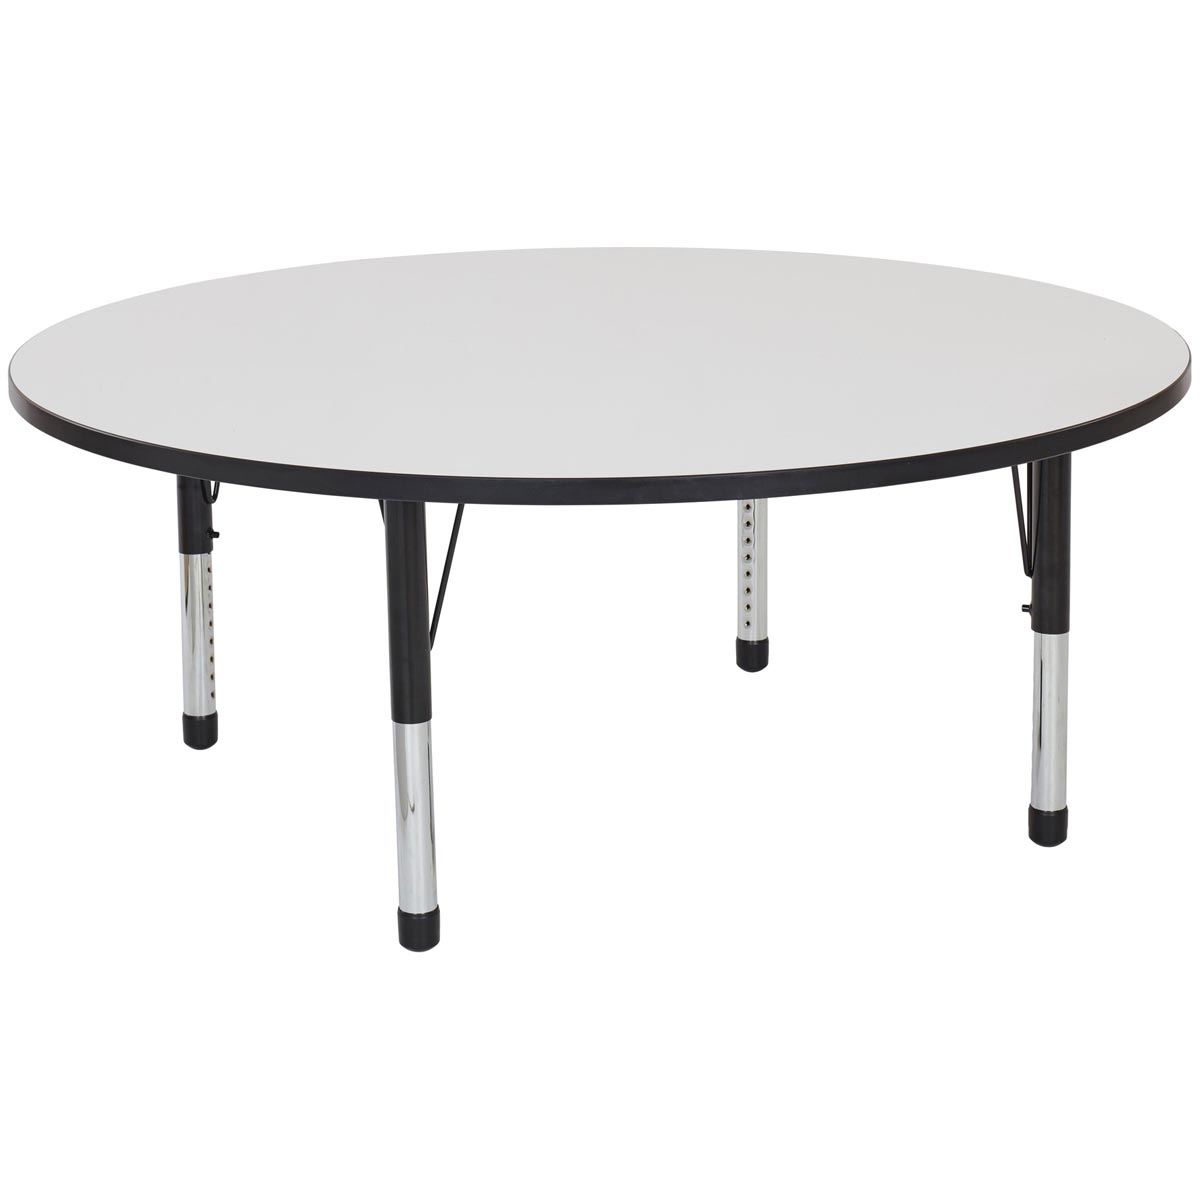 Adjustable Height Activity Table Round Adjustable Height Whiteboard Activity Table 60 Quotdia